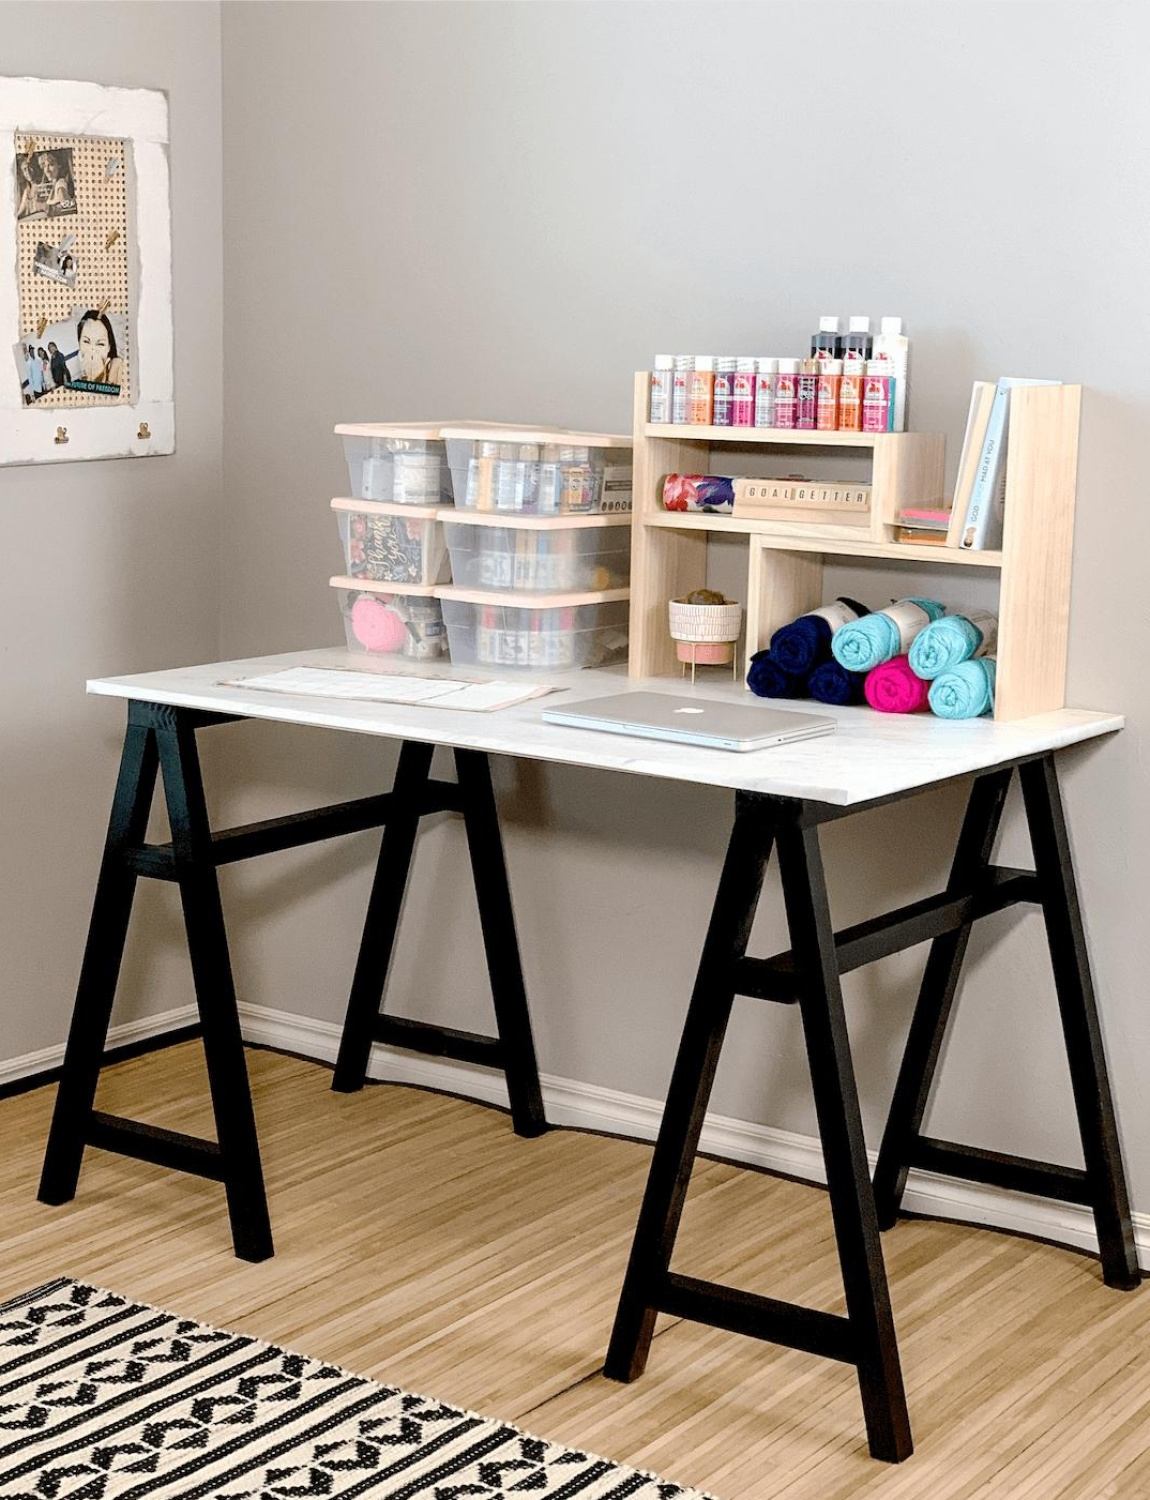 Let spray paint cure before adding shelves and fixtures